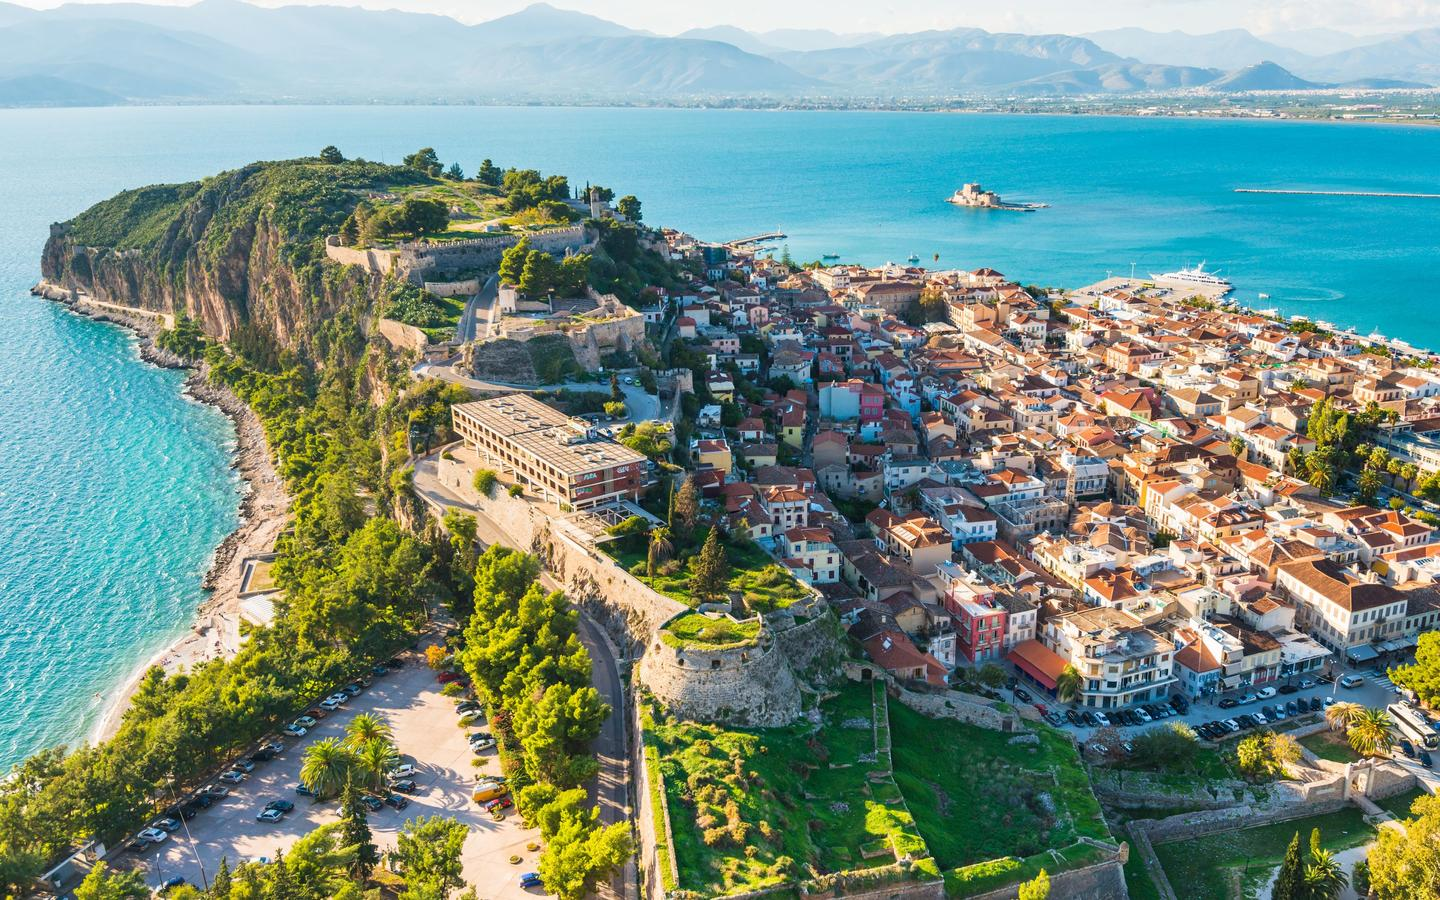 Hotels in Nafplion